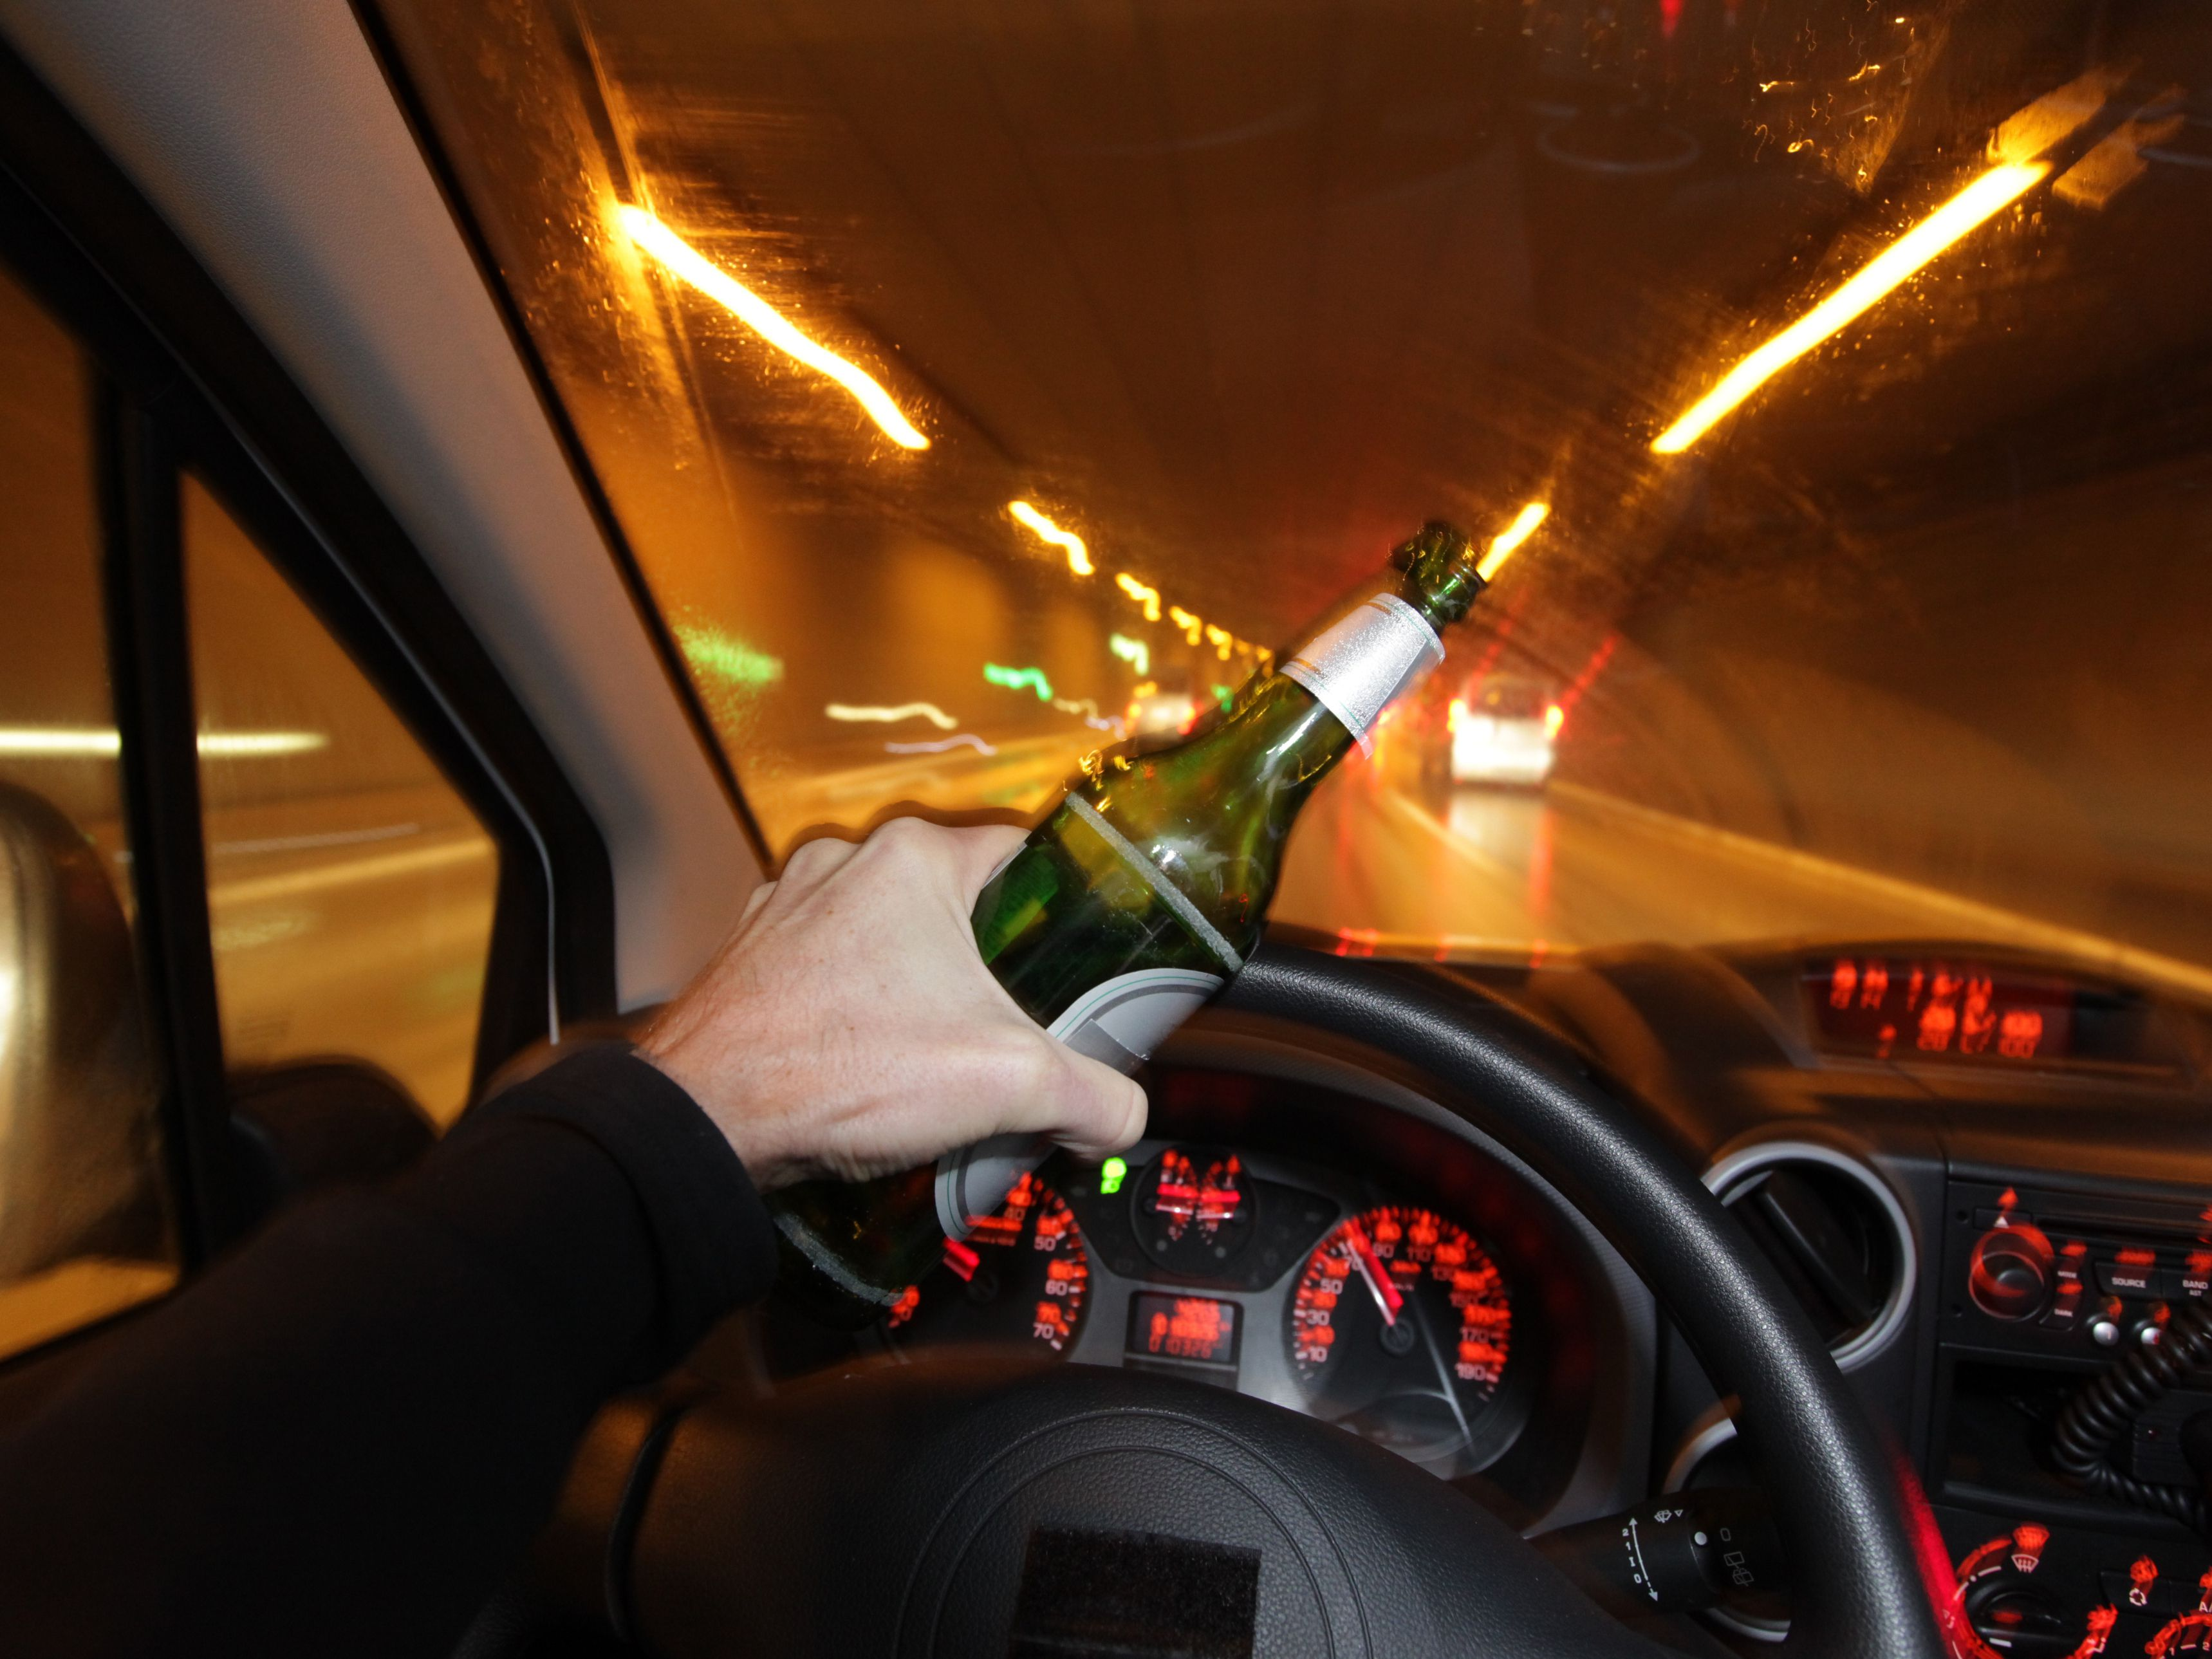 Drunk Driving Is a Crime: Legal Consequences